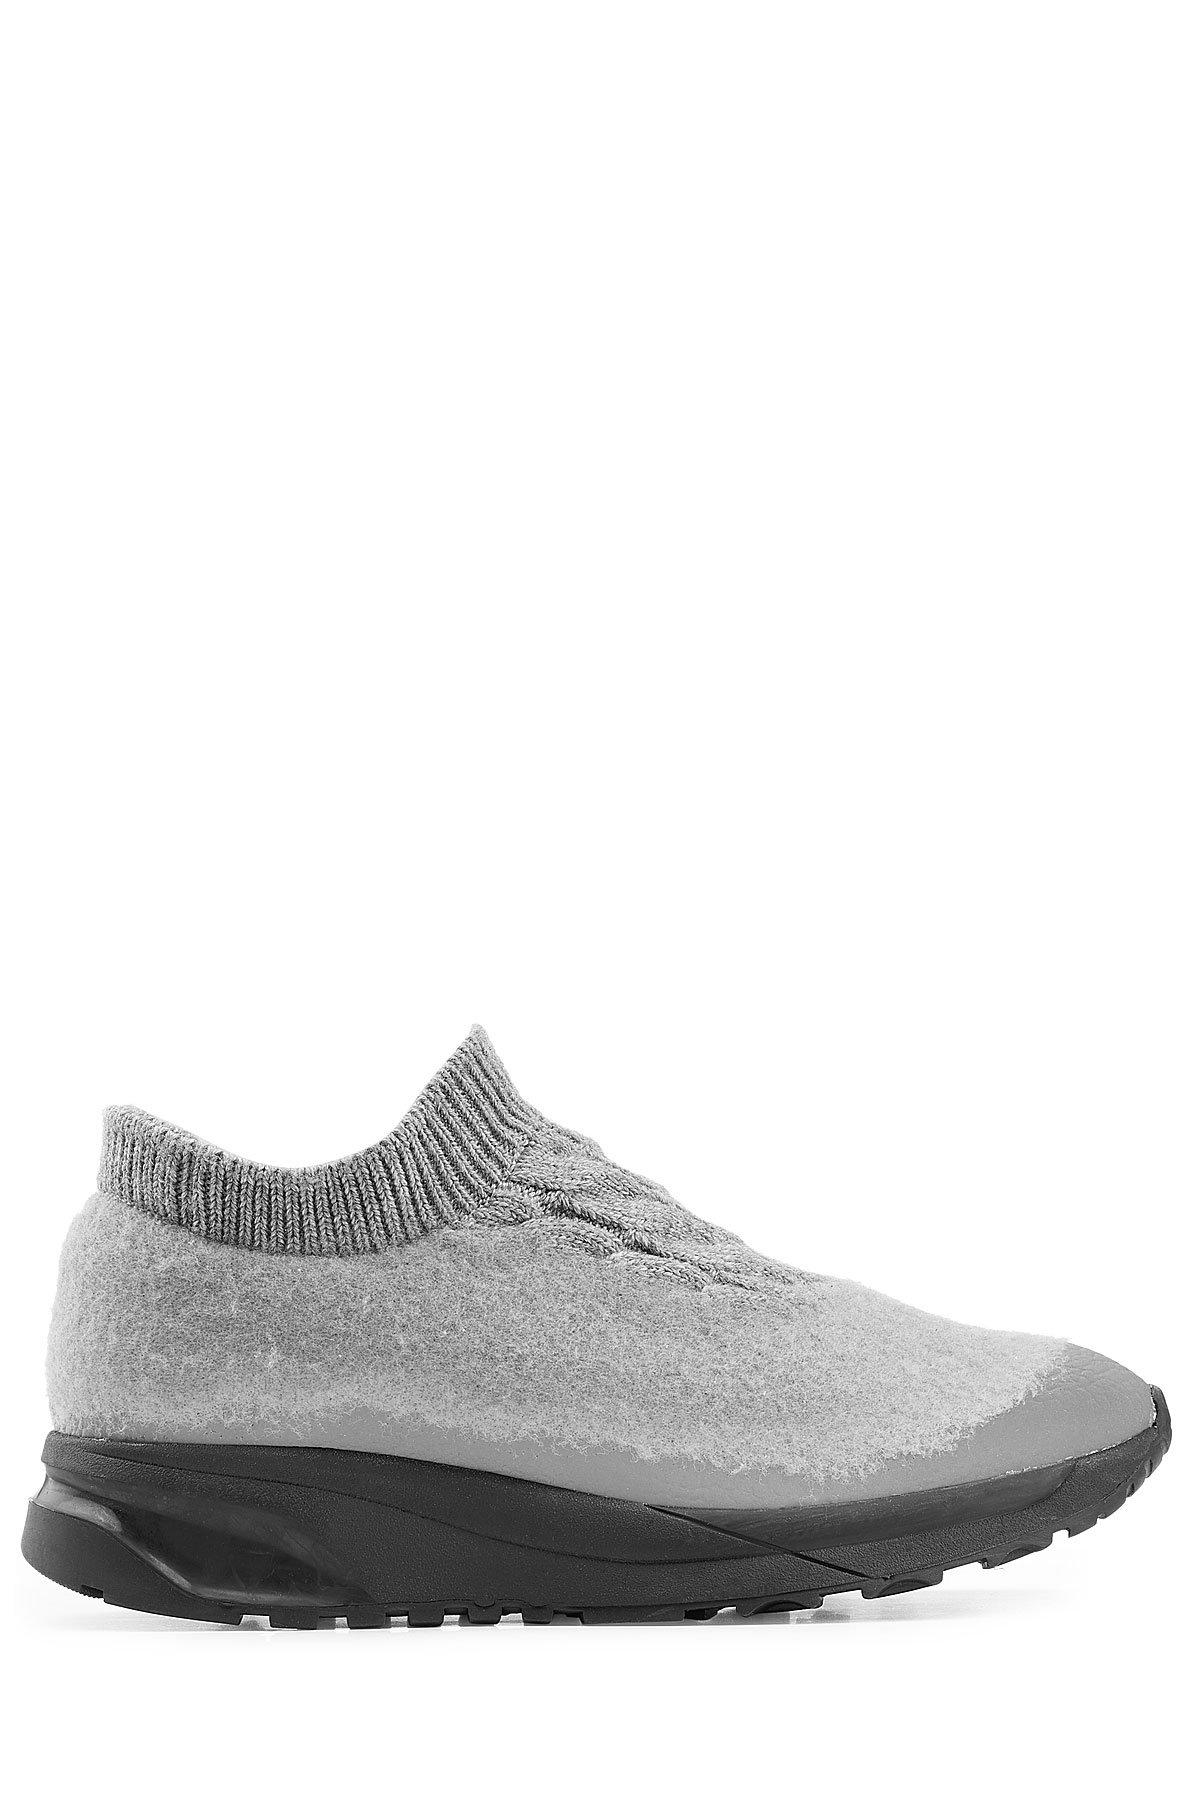 Lyst - Maison Margiela Knit Sneakers in Gray bb76525423